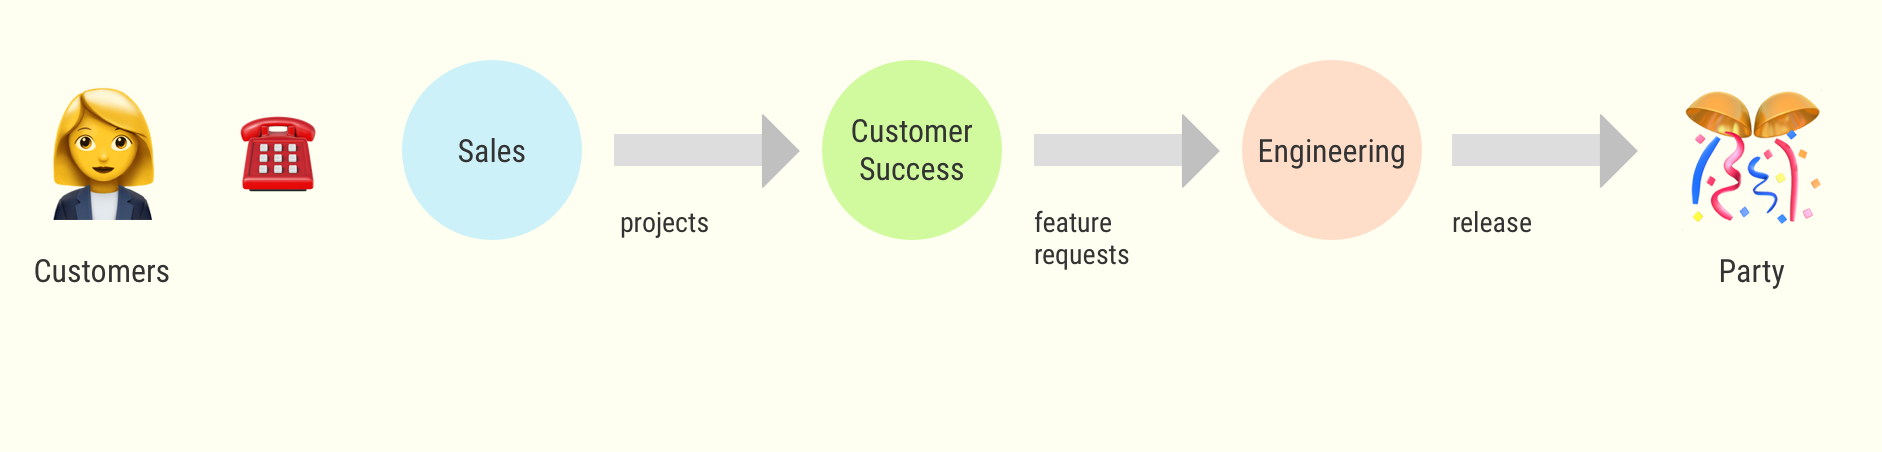 Customers' projects flow in a B2B startup